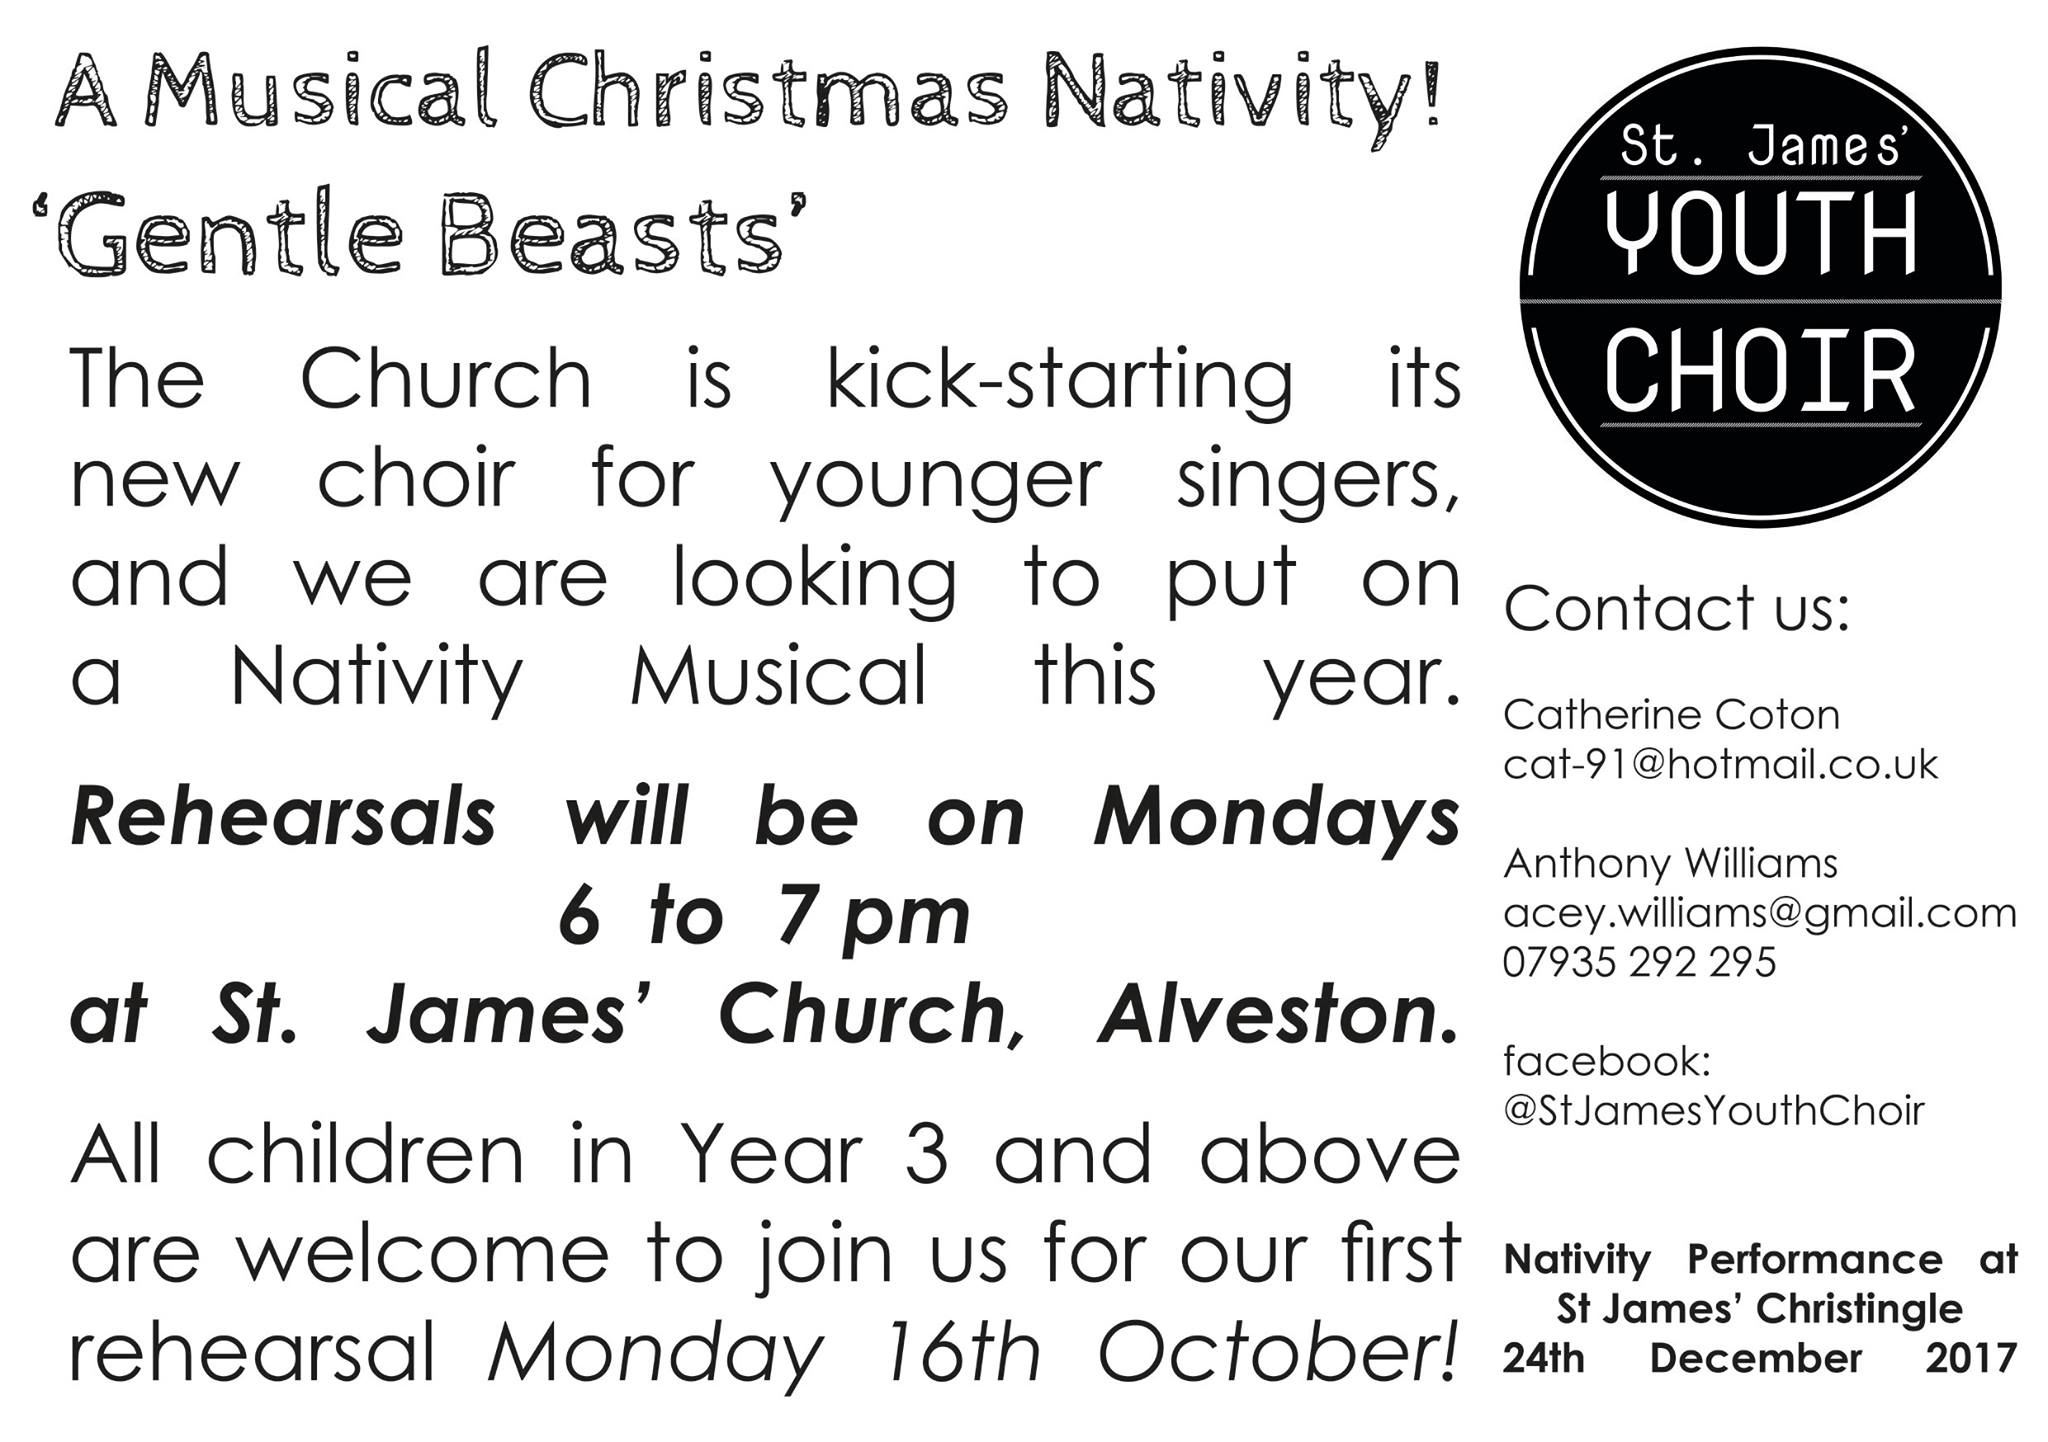 Come and join our Youth Choir - School Years 3 and above - Mondays at 6pm at St James Church Alveston